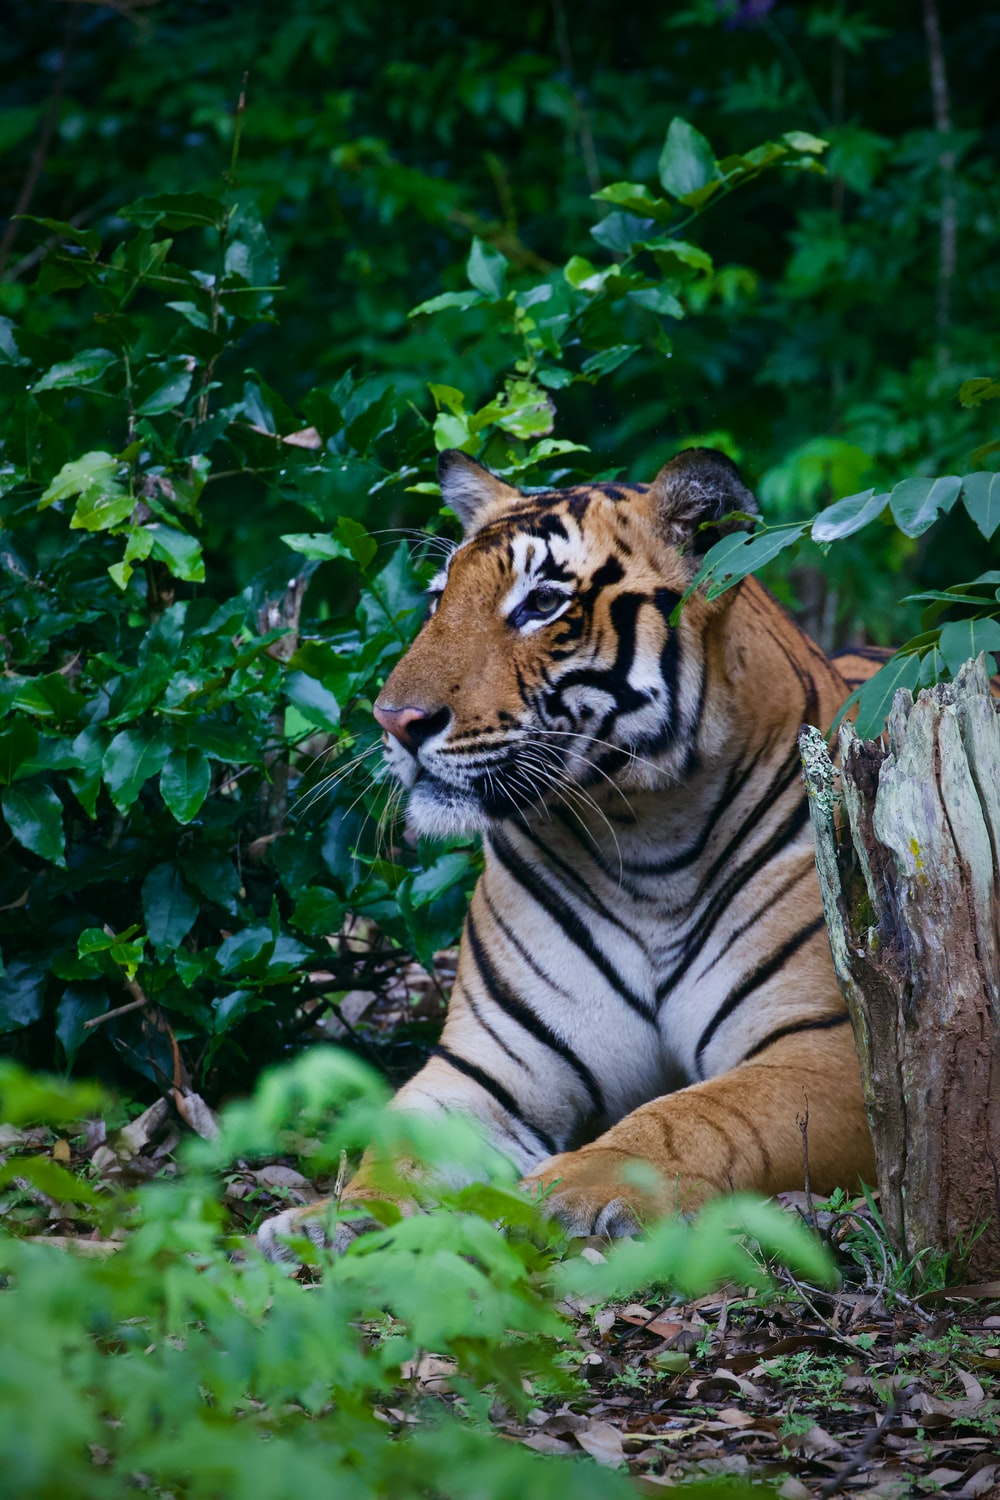 brown and black tiger lying on ground beside green leaves during daytime